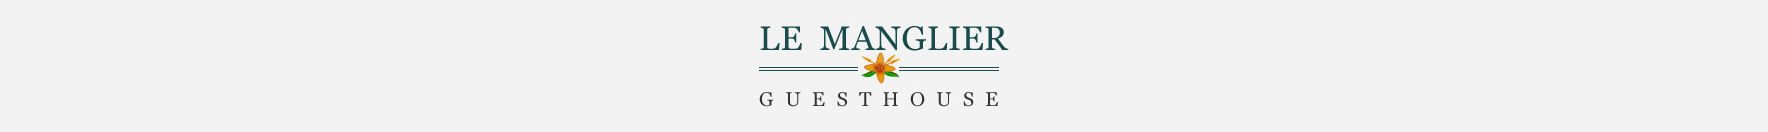 Le Manglier Guesthouse - Logo Full